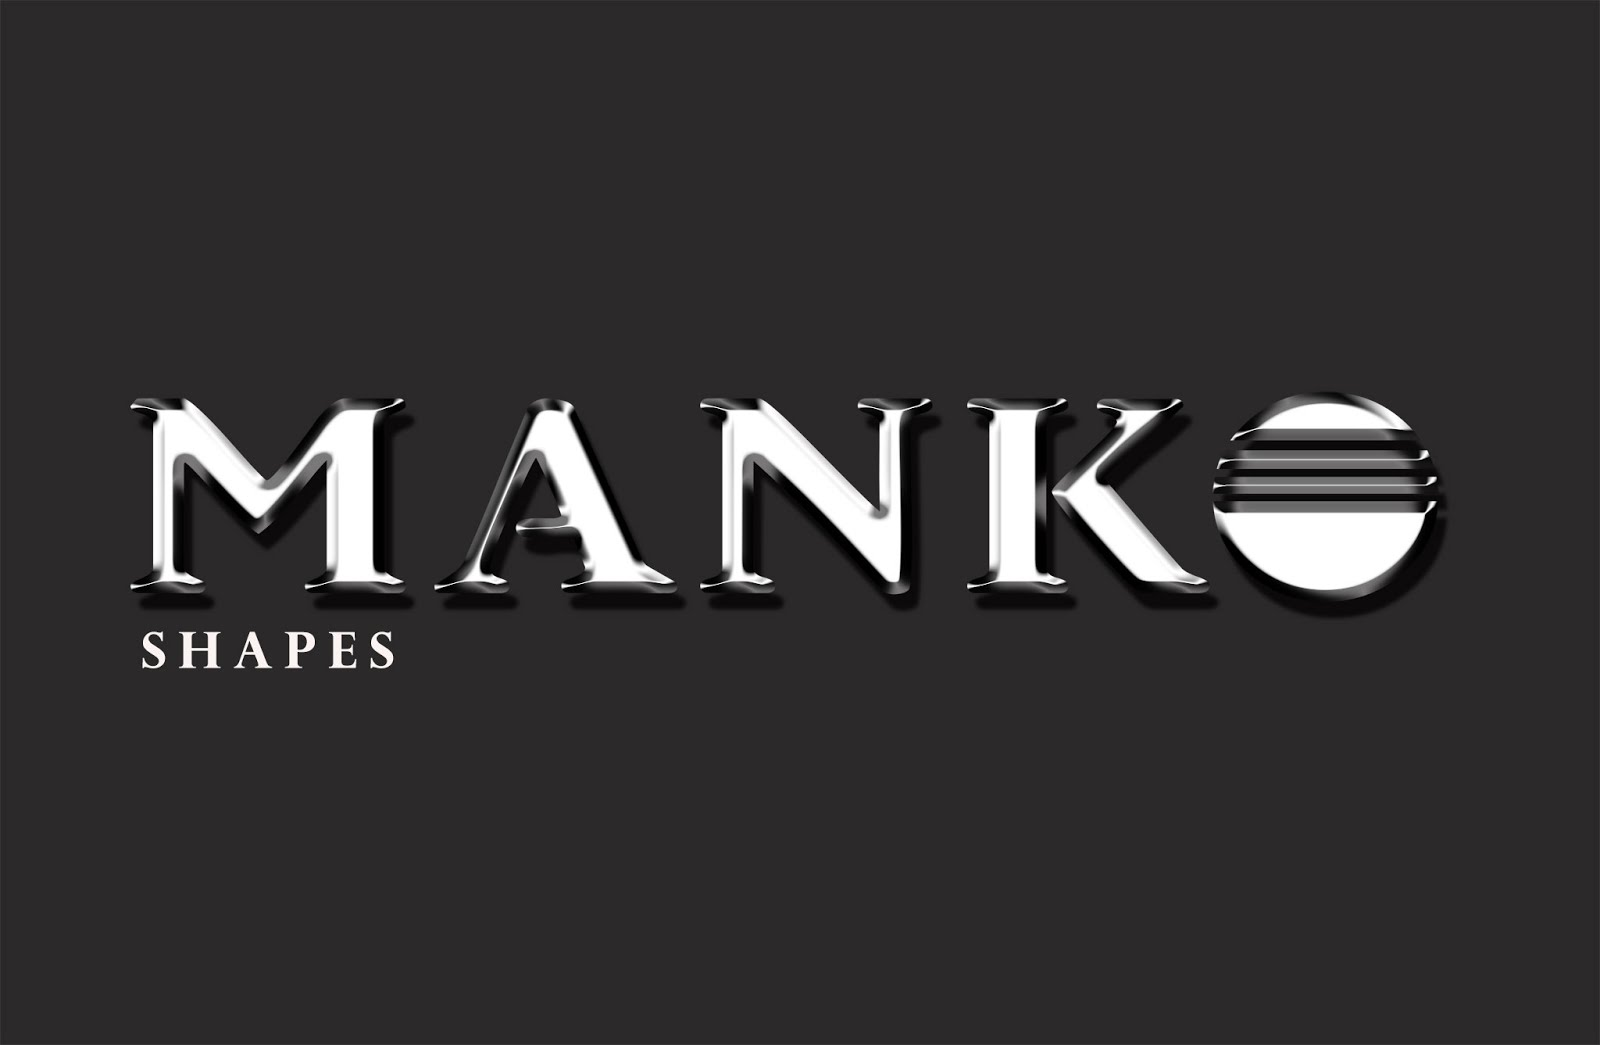 **MANKO** Shapes